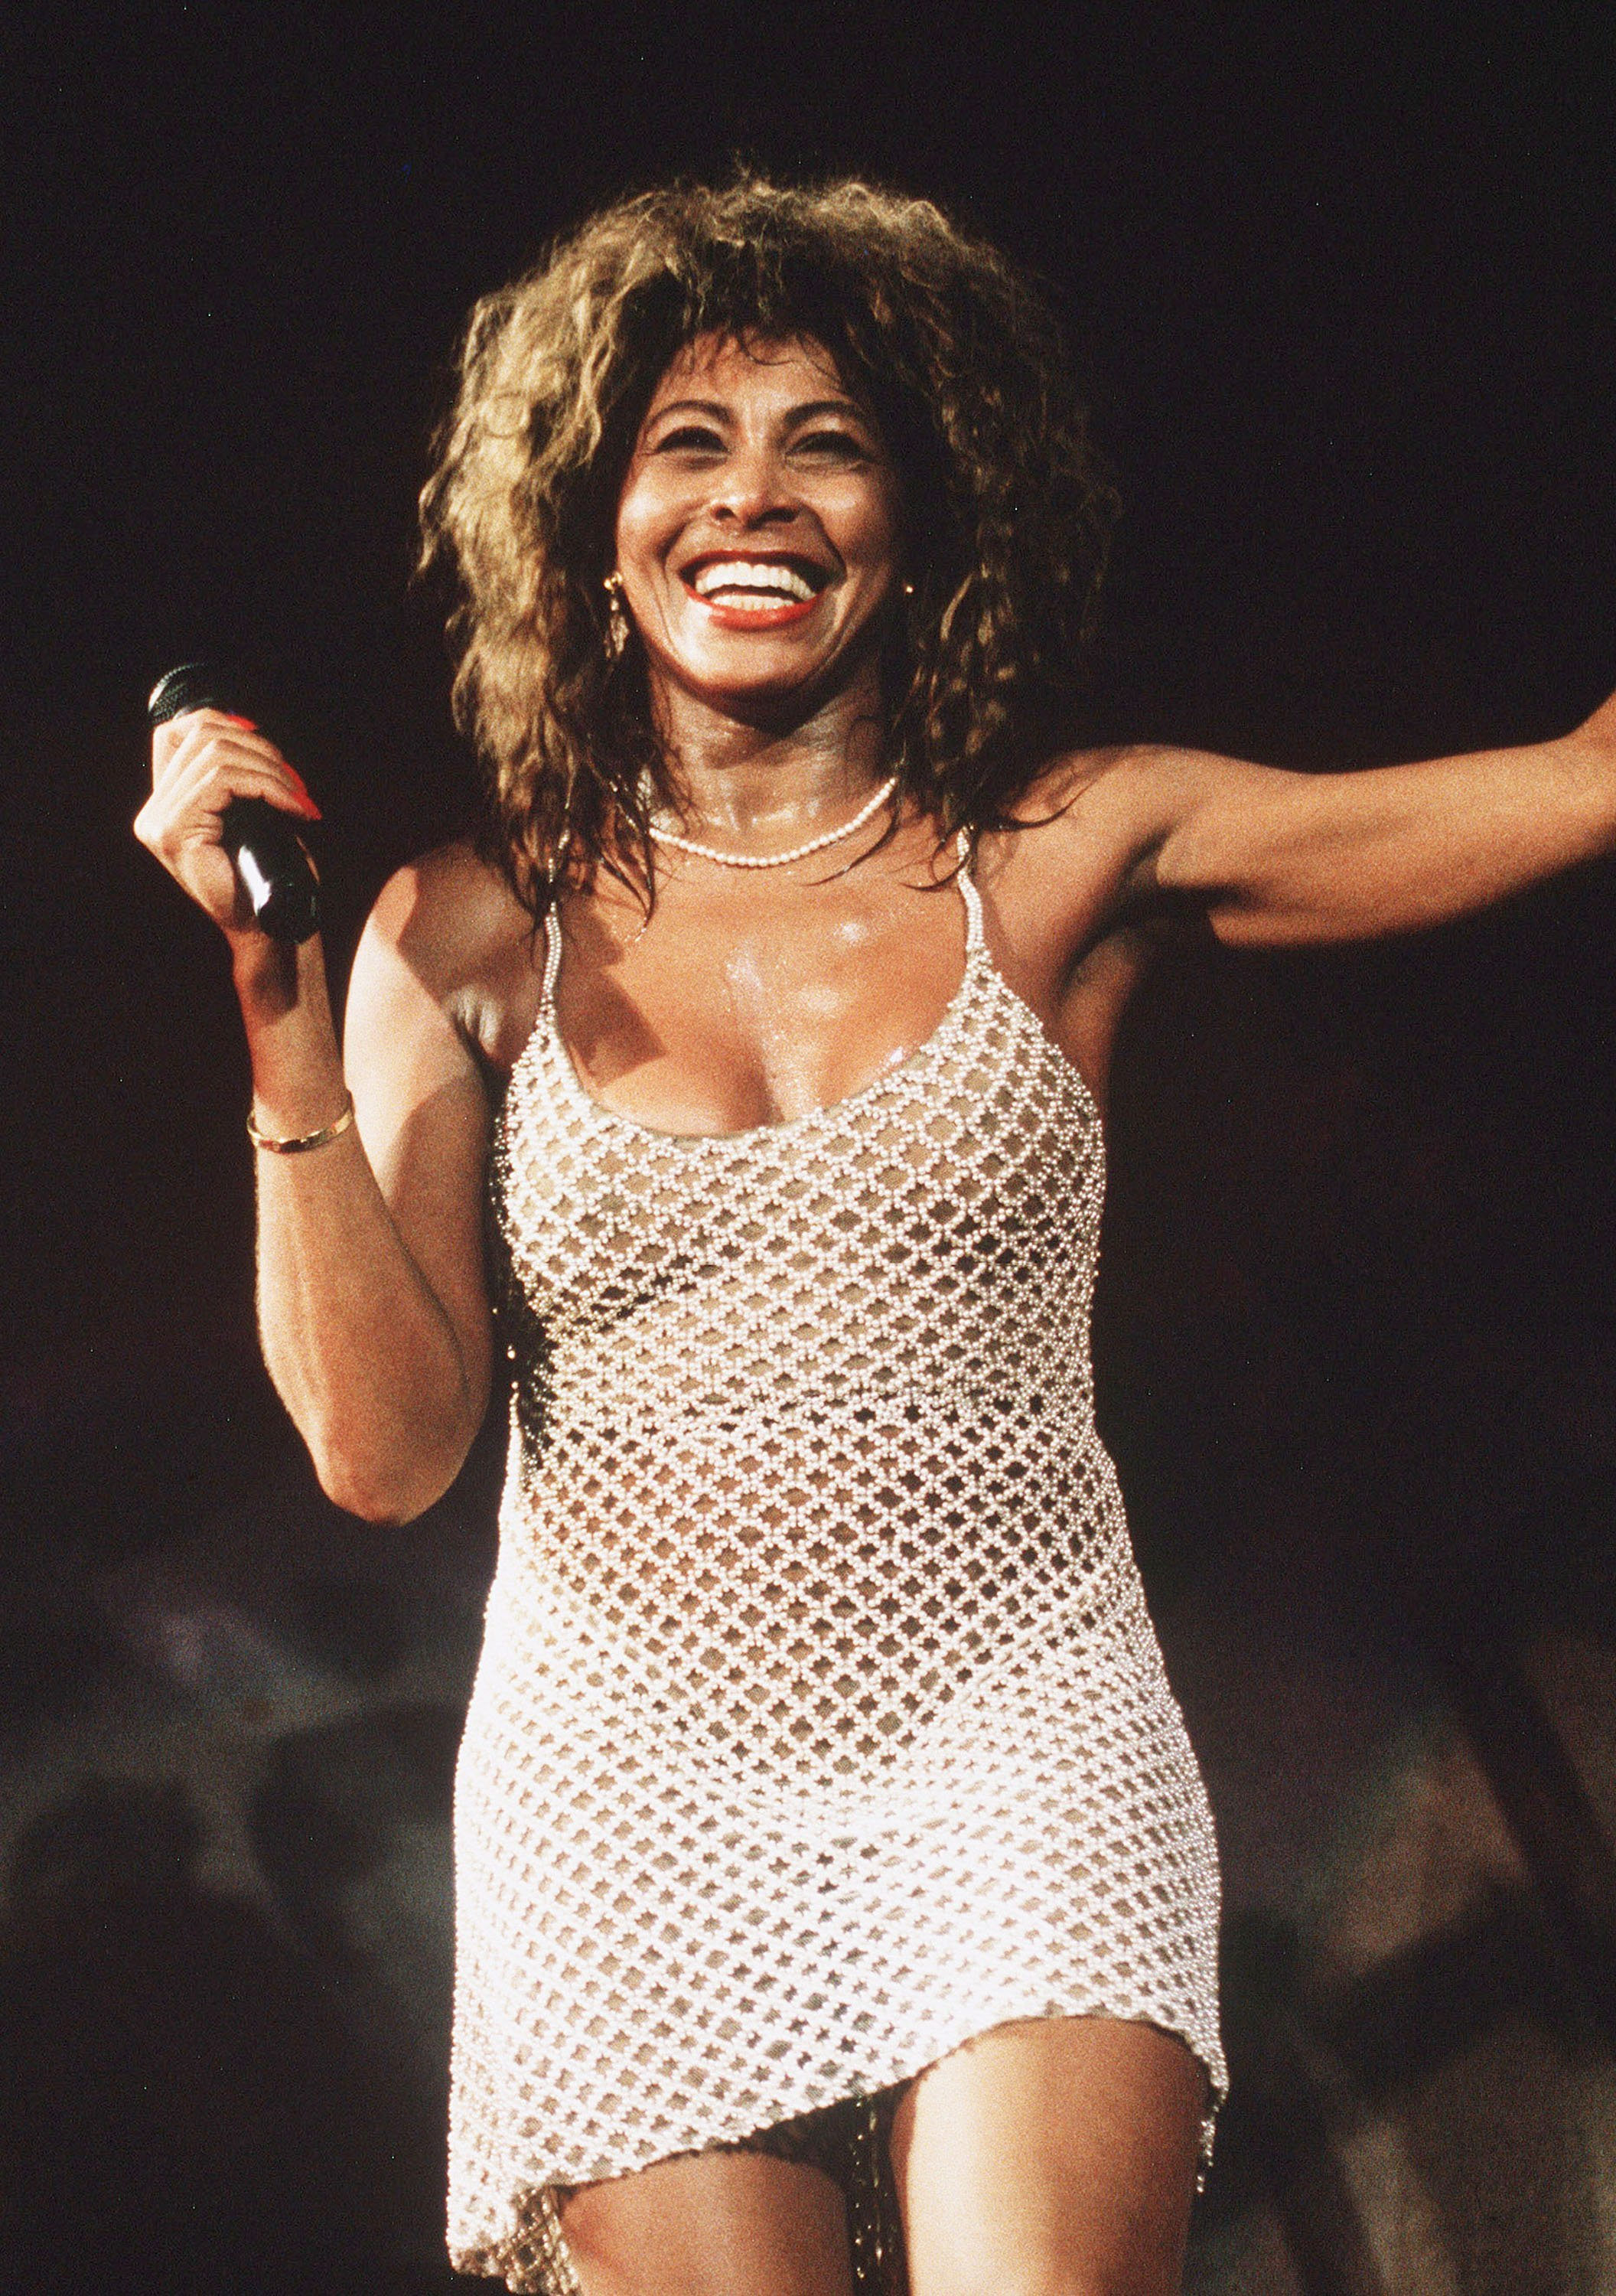 Tina Turner performs live on stage at Wembley Stadium in 1990. | Source: Getty Images.